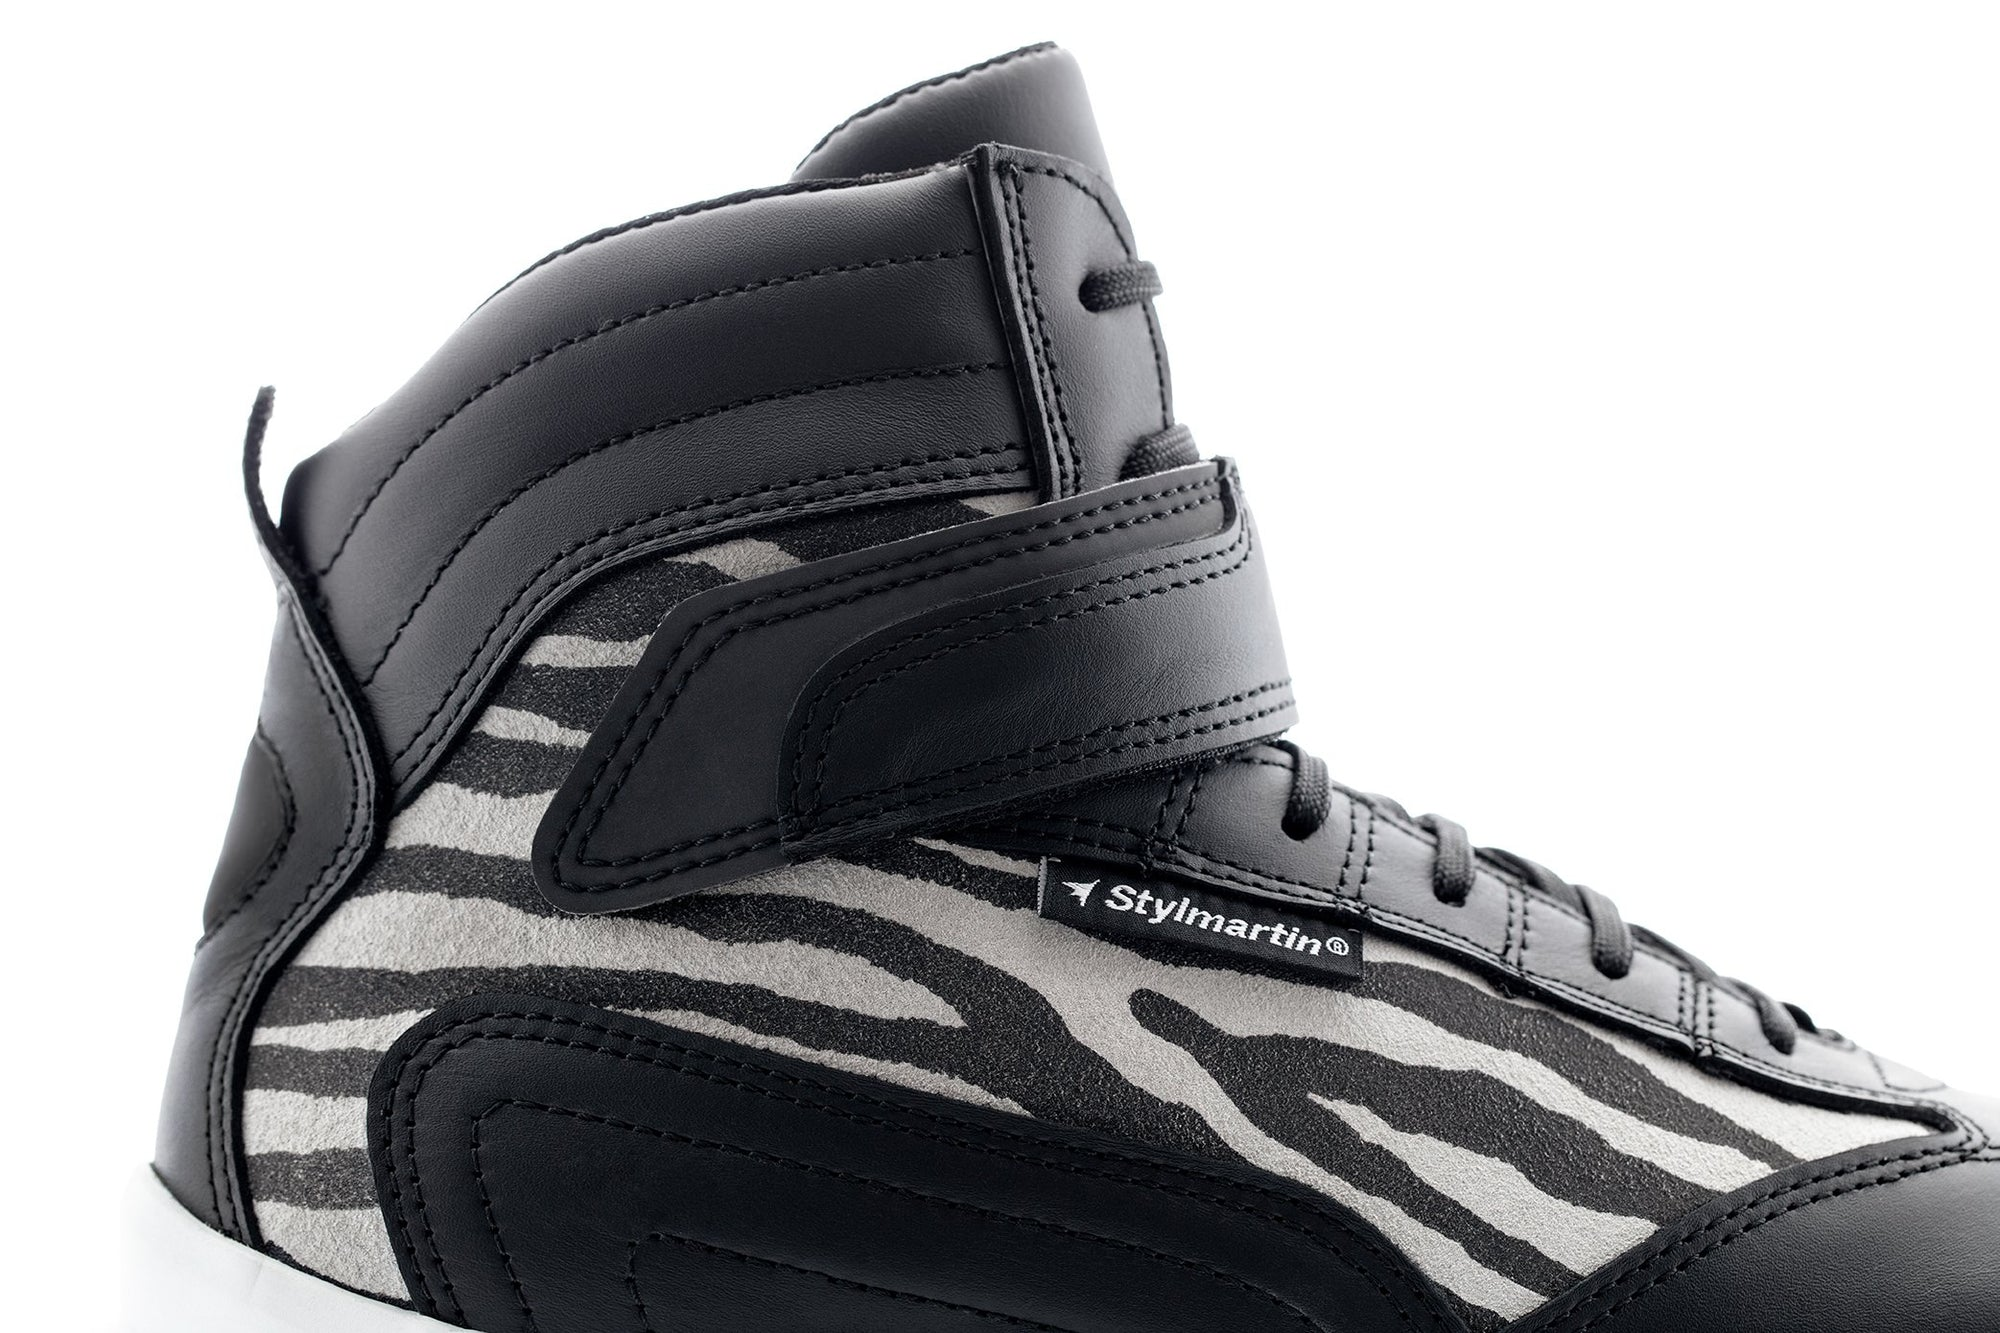 Stylmartin - Stylmartin Audax Jungle WP Sport U in Black - Boots - Salt Flats Clothing